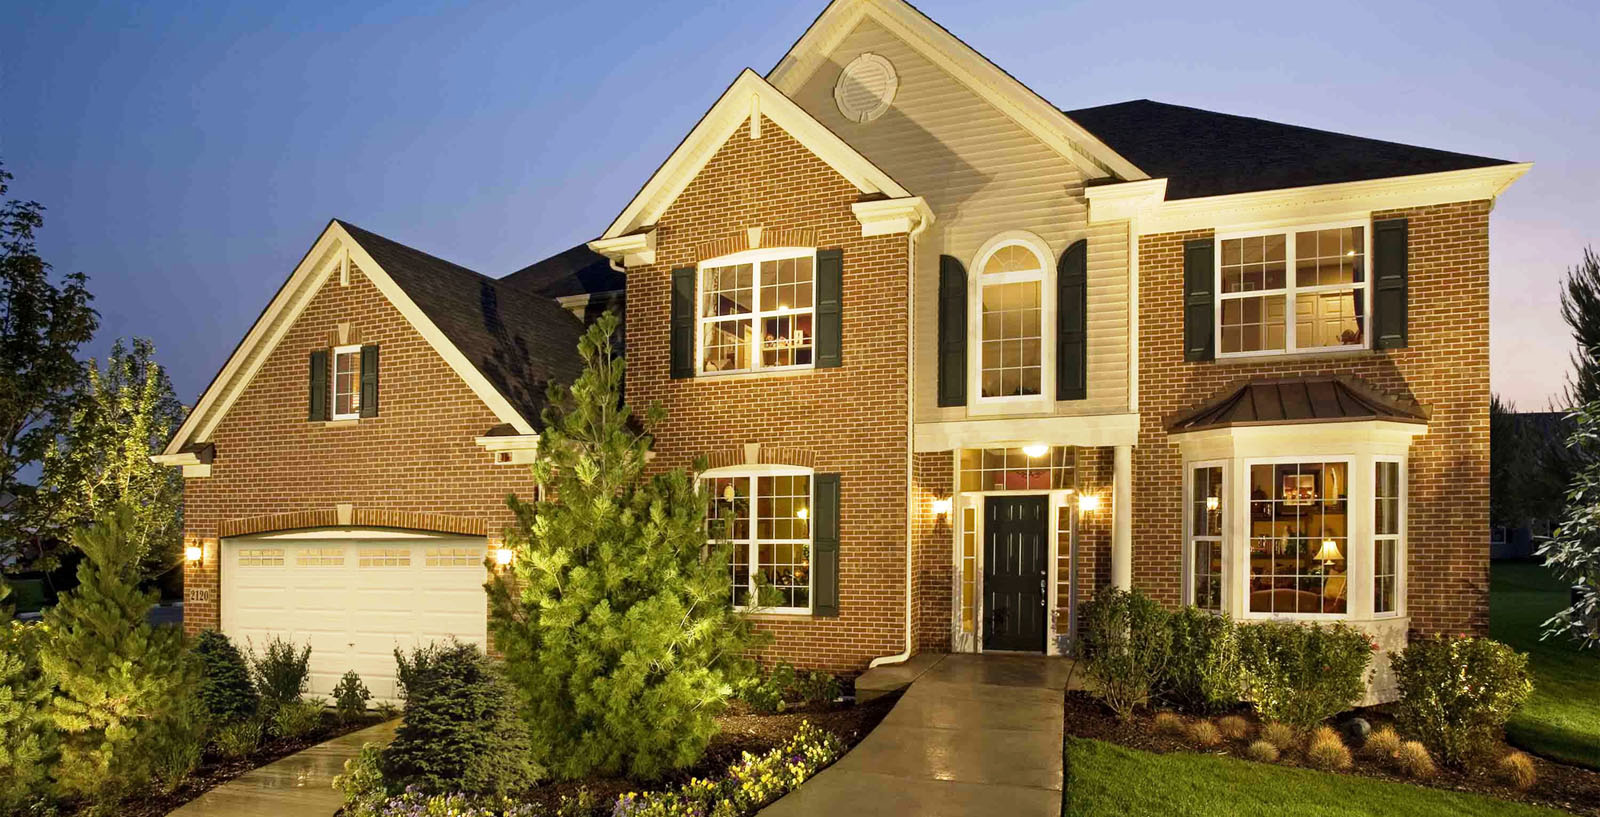 House plans atlanta atlanta ga house plans house design Home designers atlanta